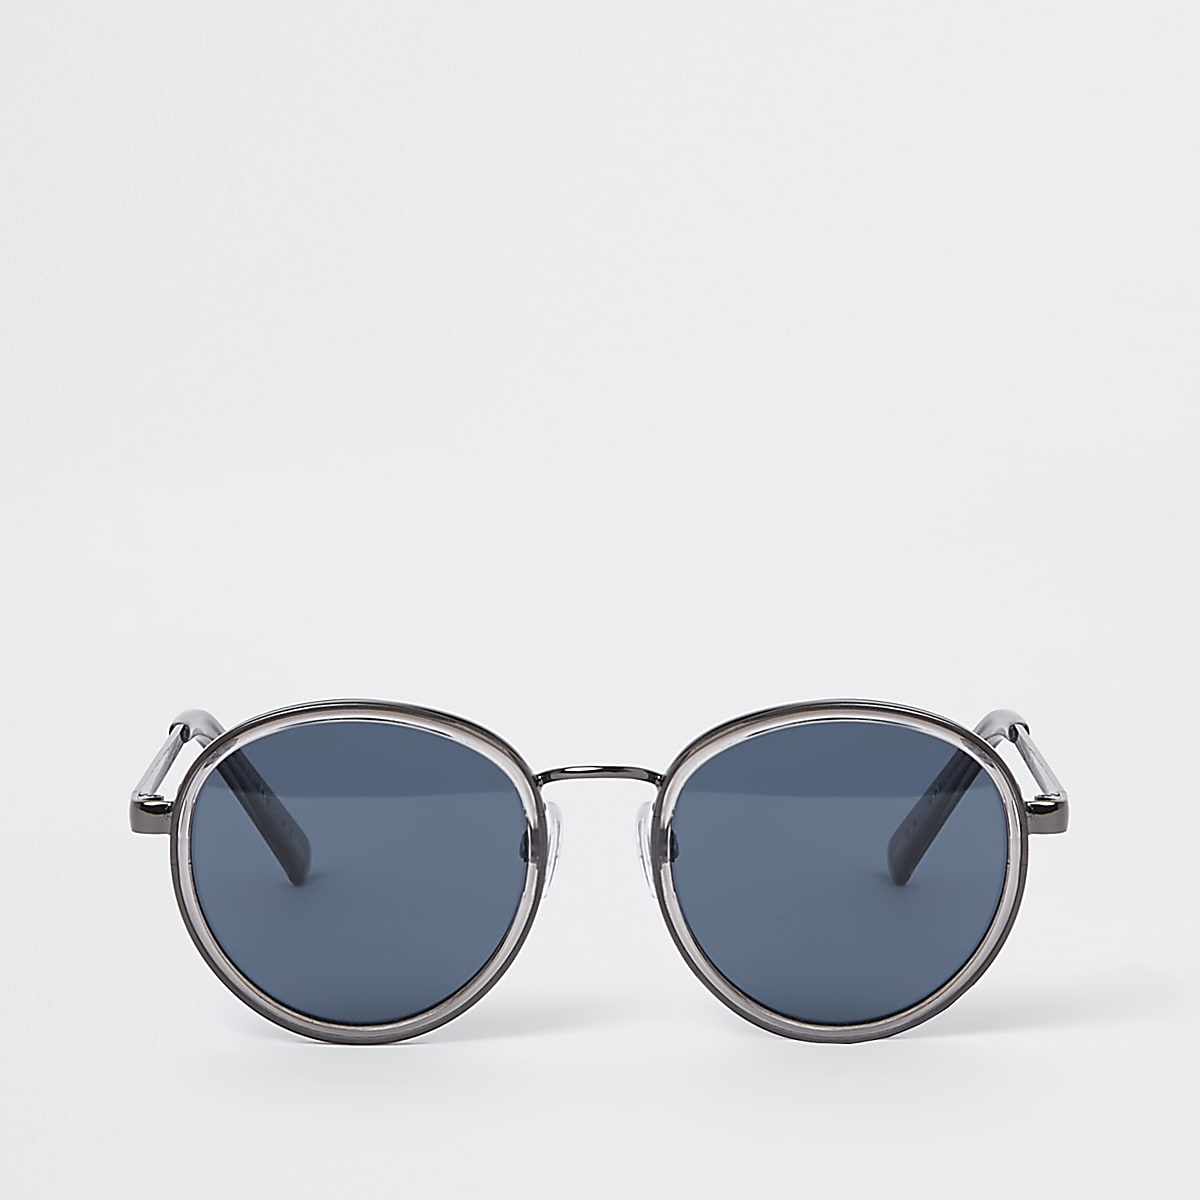 Grey blue lens round sunglasses